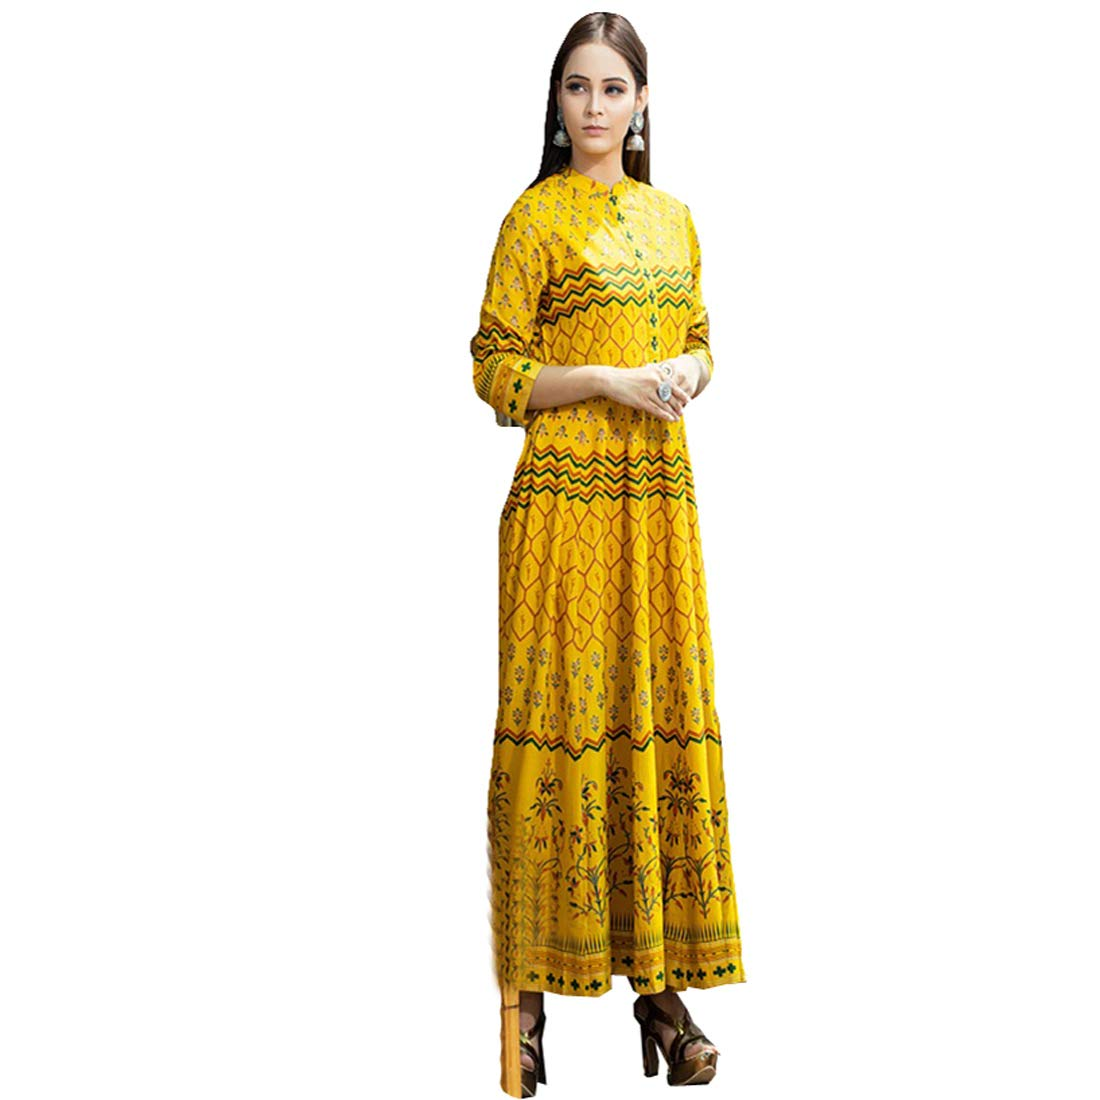 e388f3e8e3 Mio Belle Yellow Color Pure gold printed Gown on Rayon Gowns (Full  Stitched): Amazon.in: Clothing & Accessories